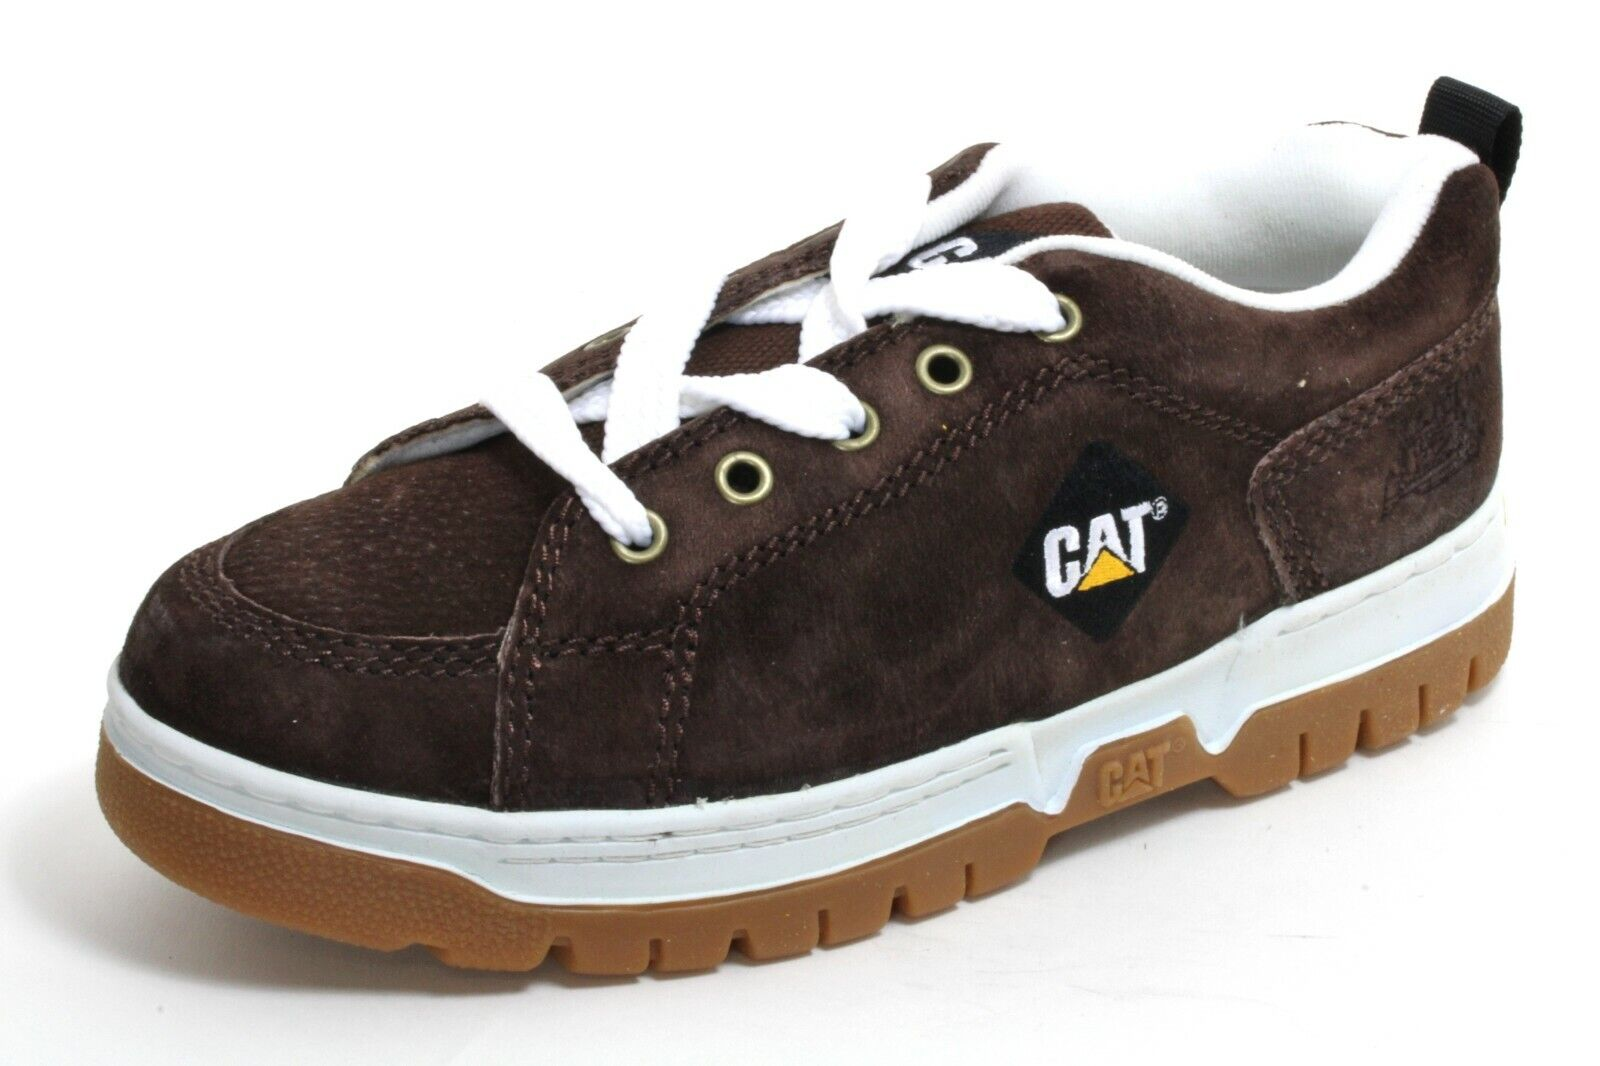 317 Lace-Up Trainers Men's Shoes Leather Boots Caterpillar 46